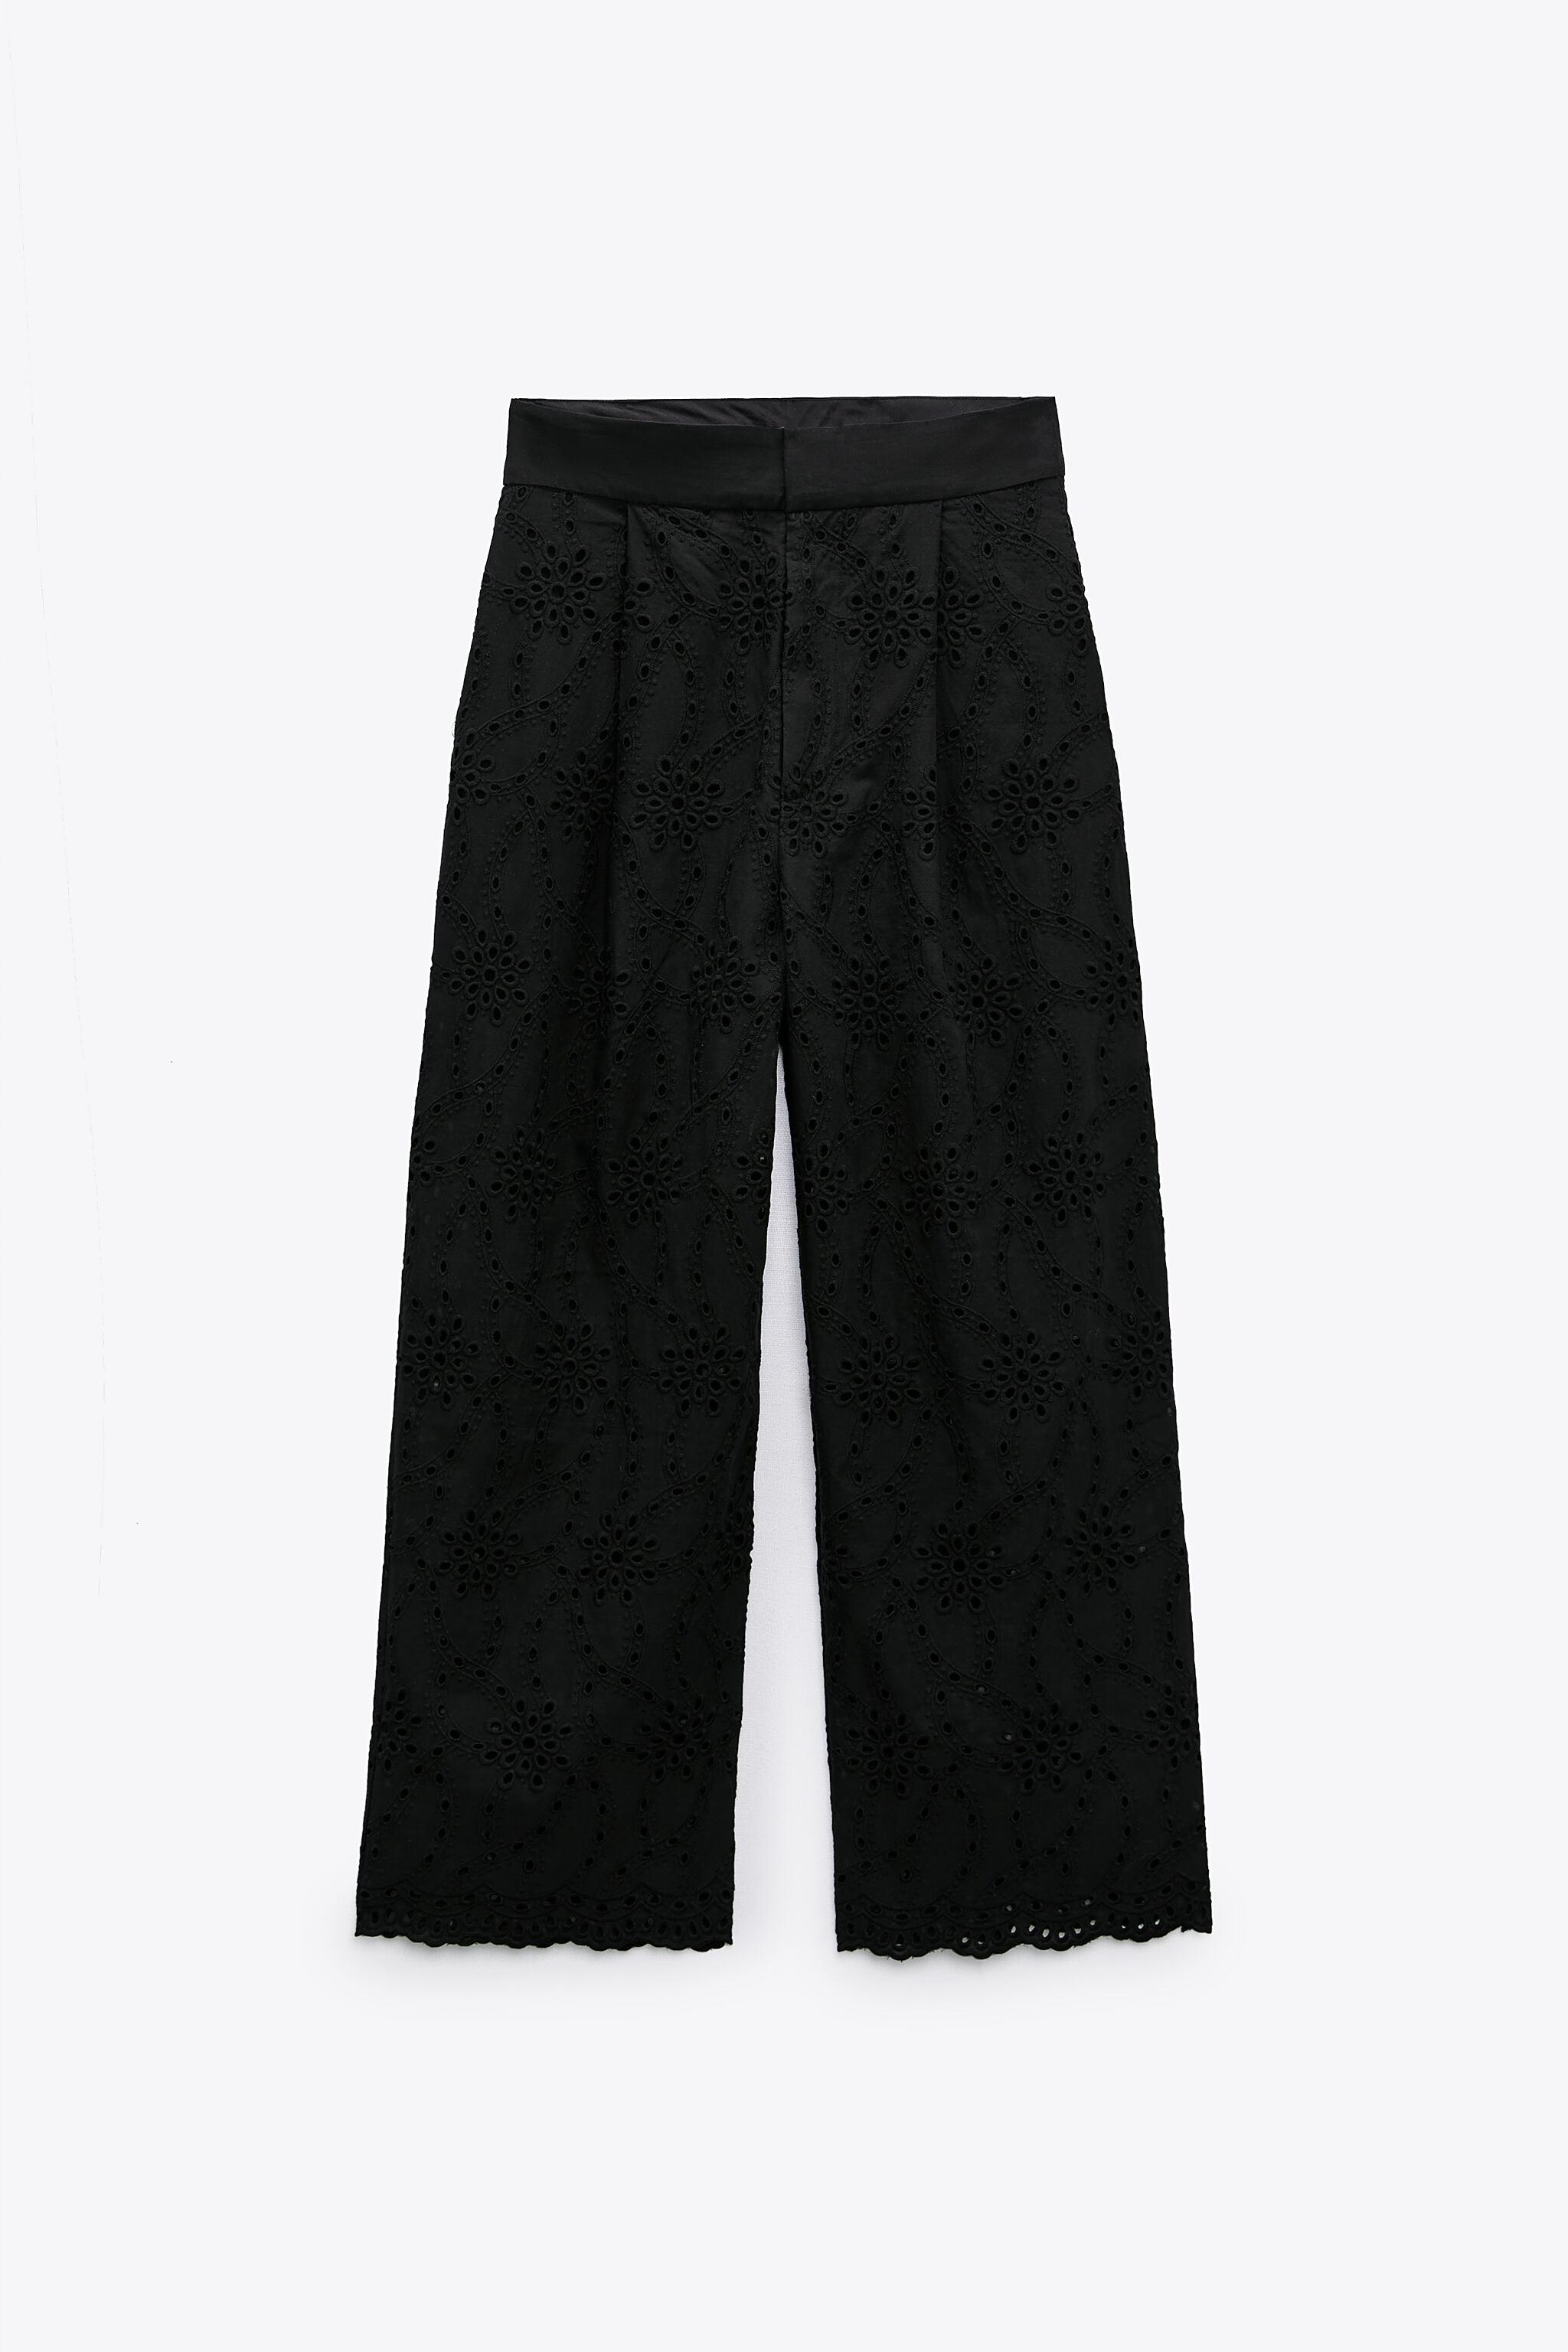 PANTS WITH OPENWORK EMBROIDERY 5